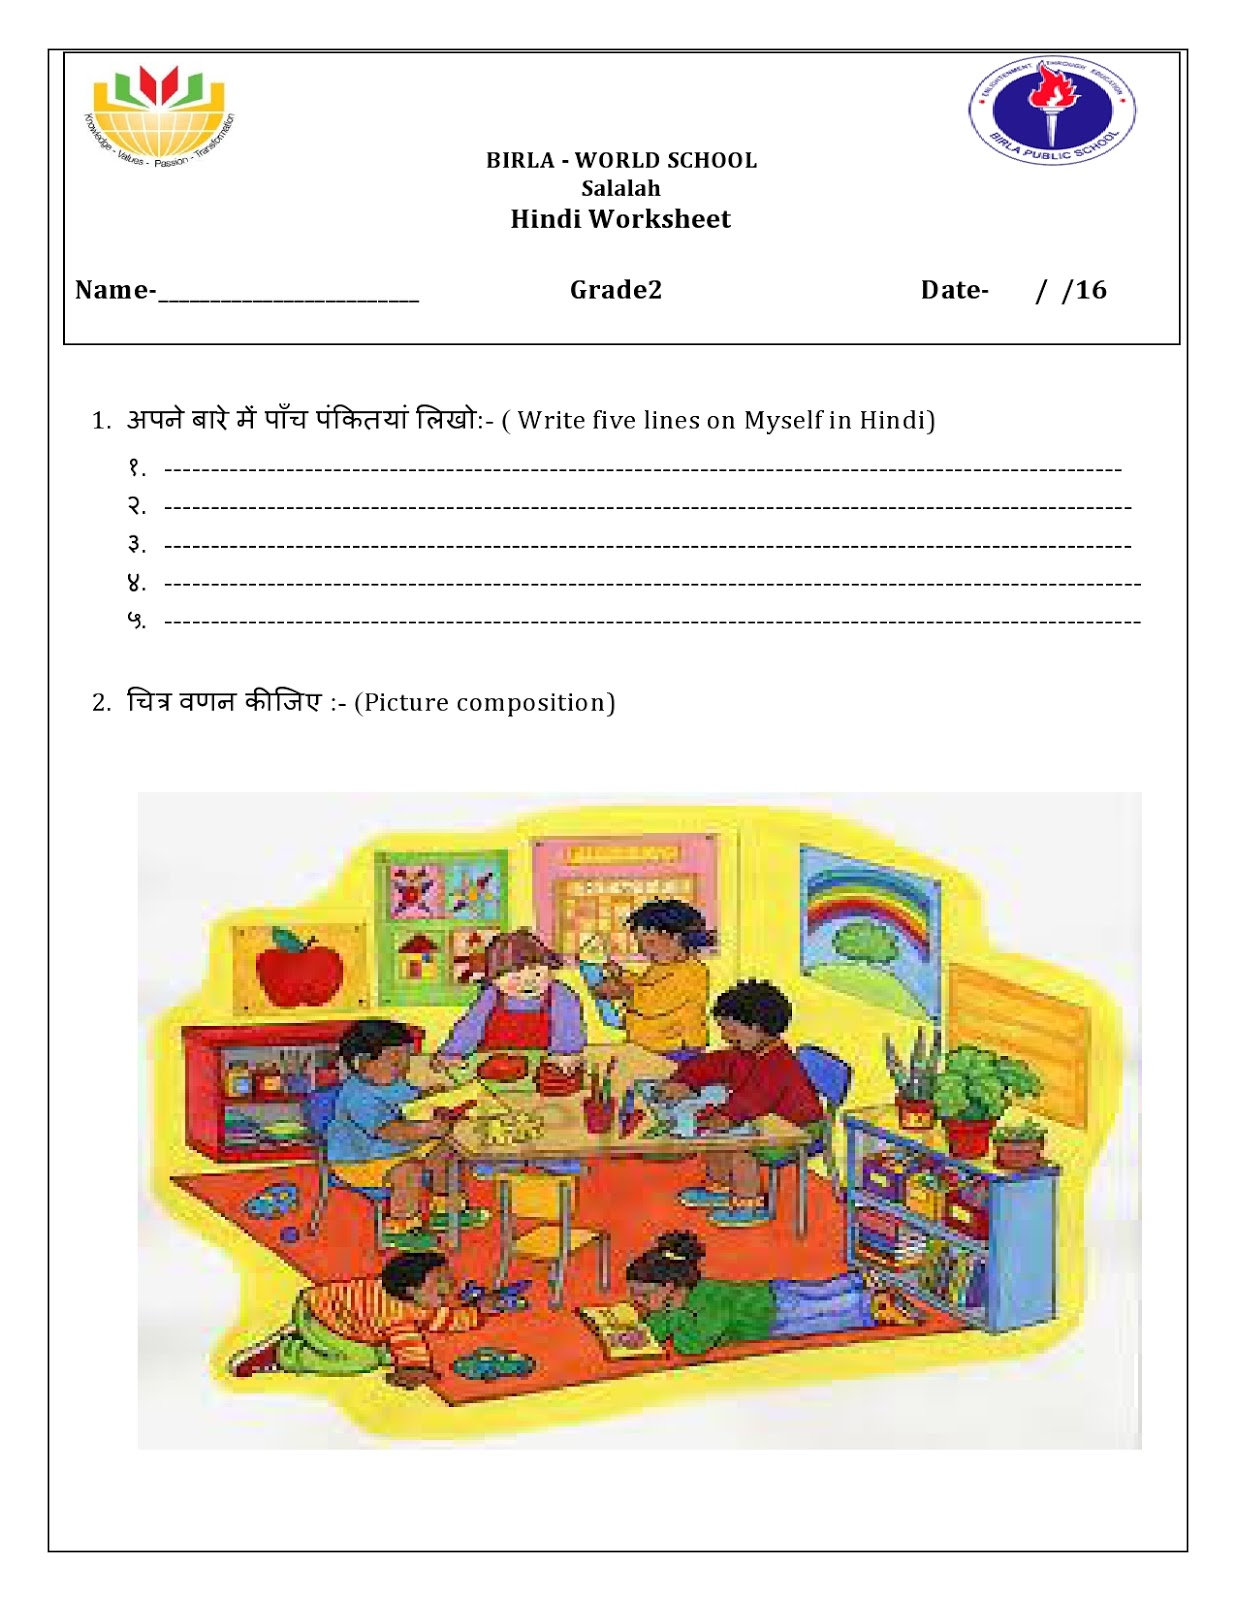 Birla World School Oman Homework For Grade 2b On 28 1 16